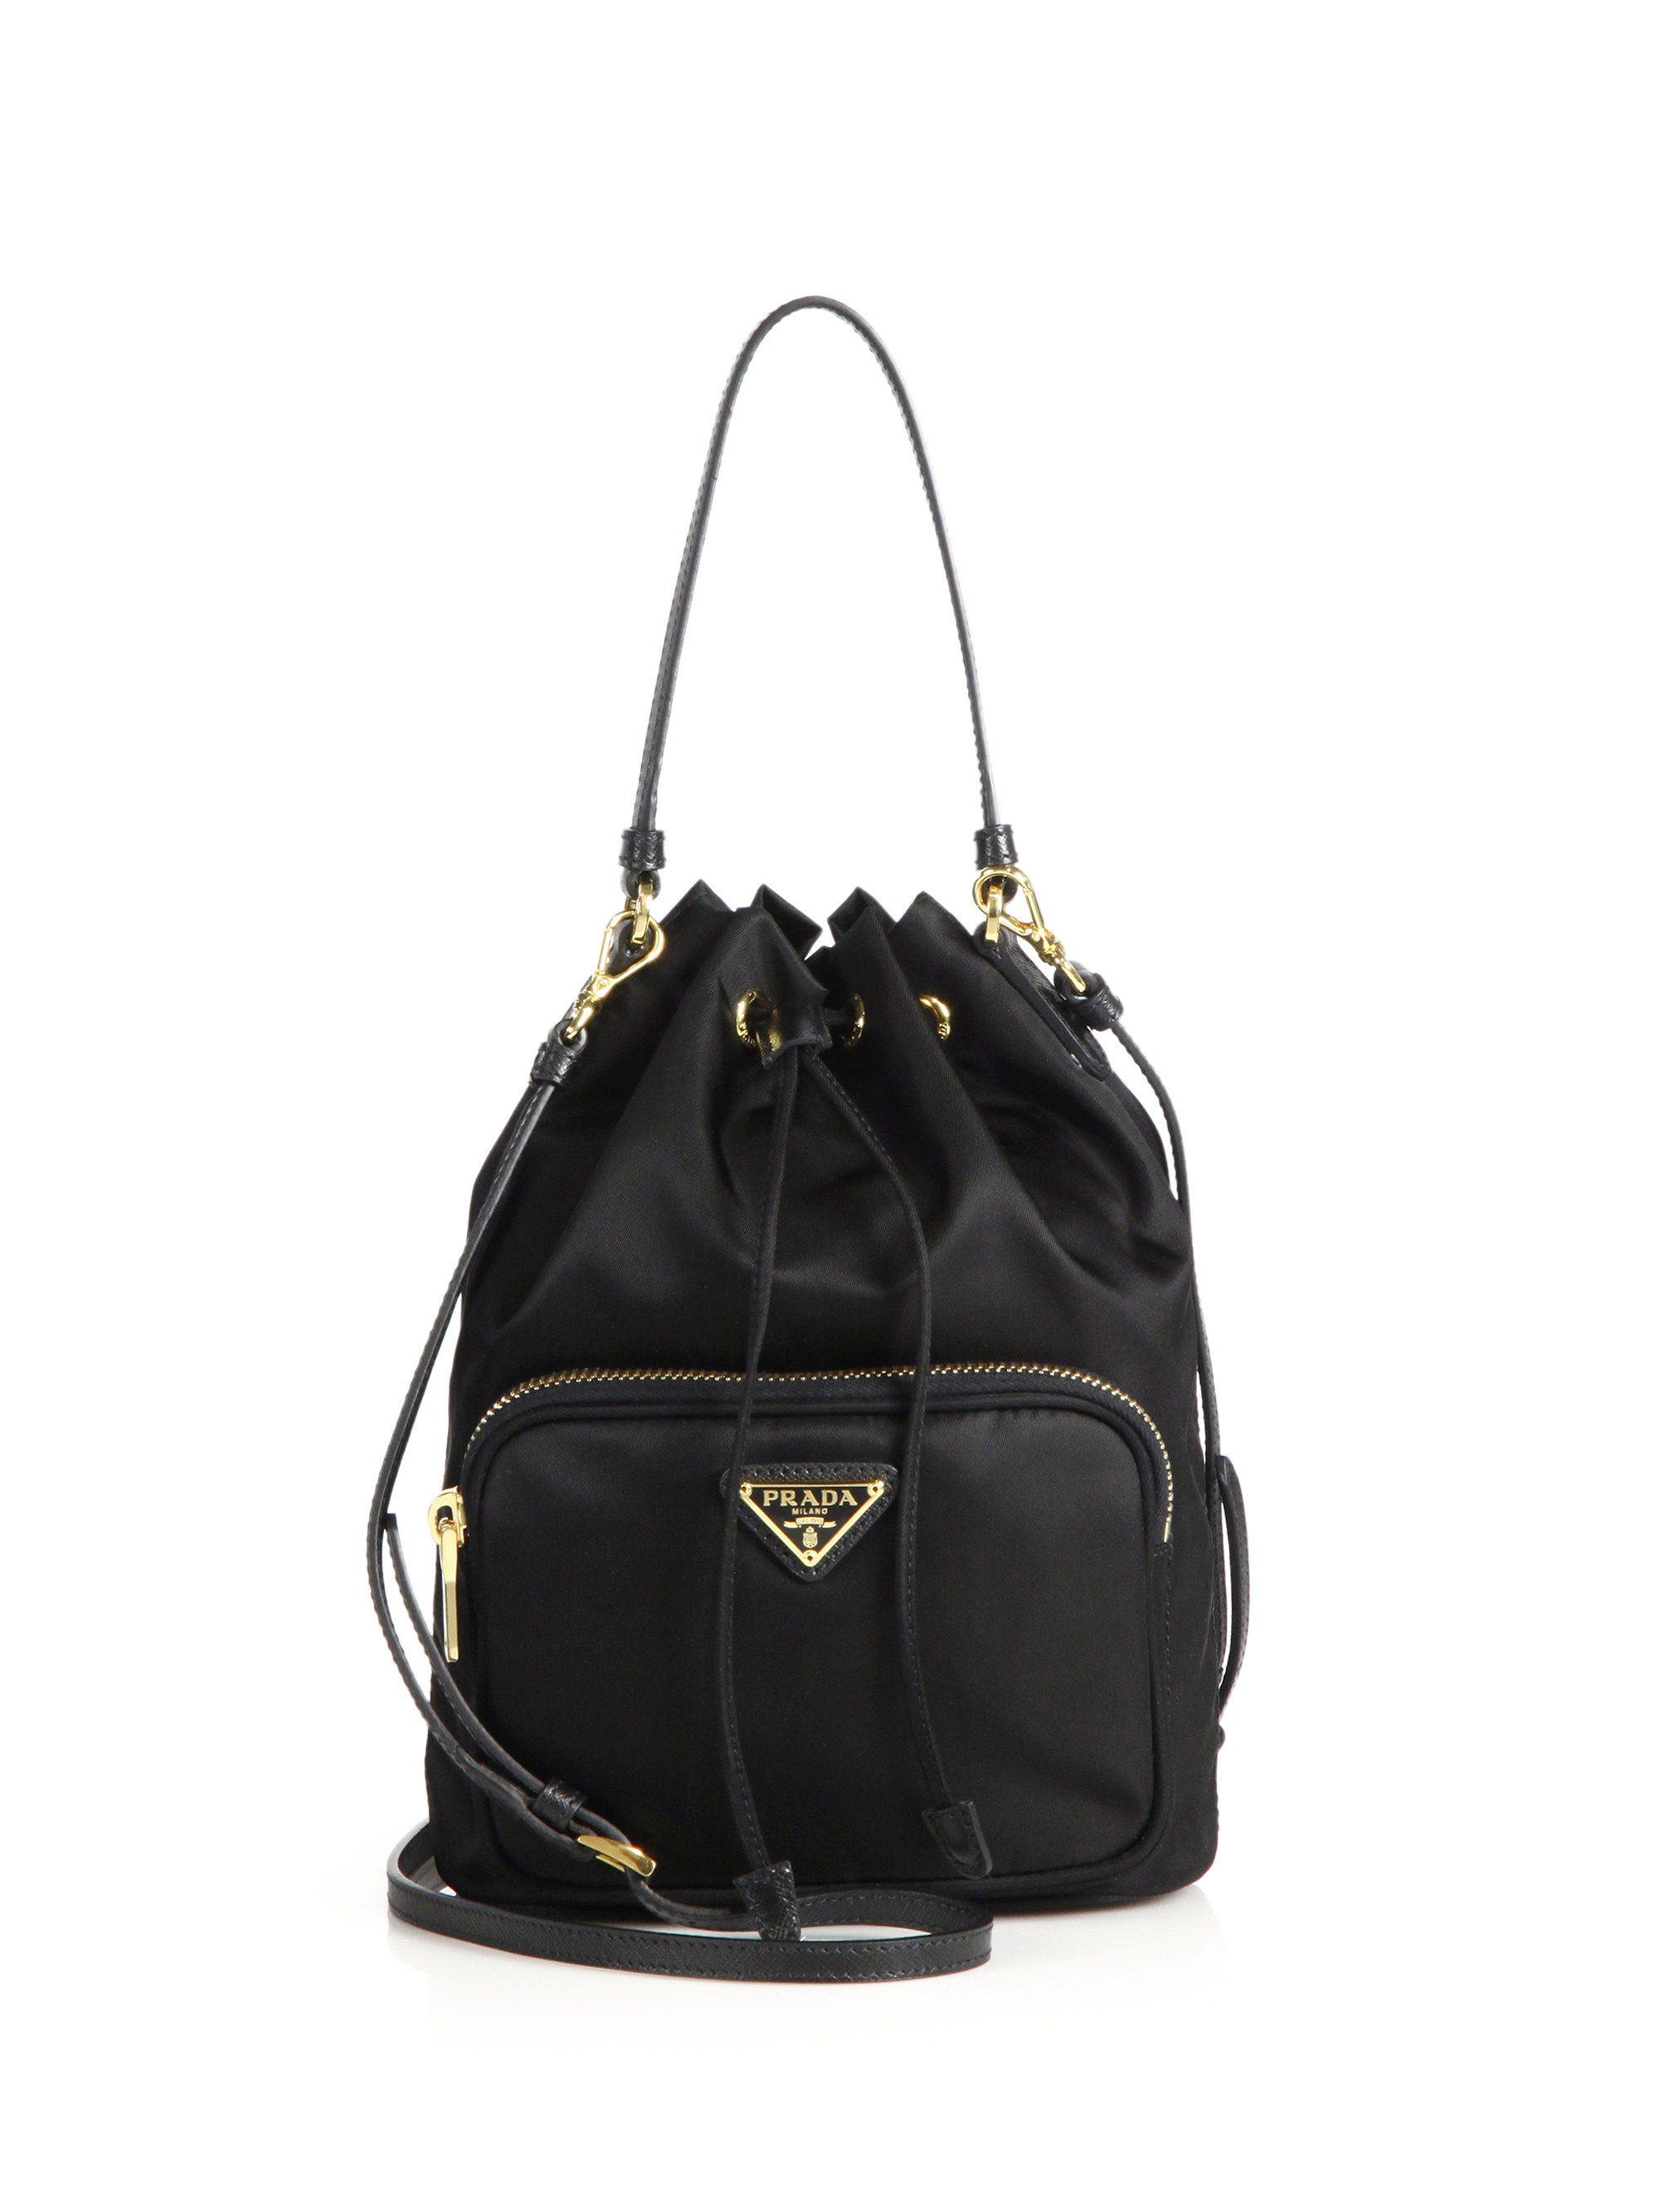 Prada Small Bucket Bag Prada Inspired Bag